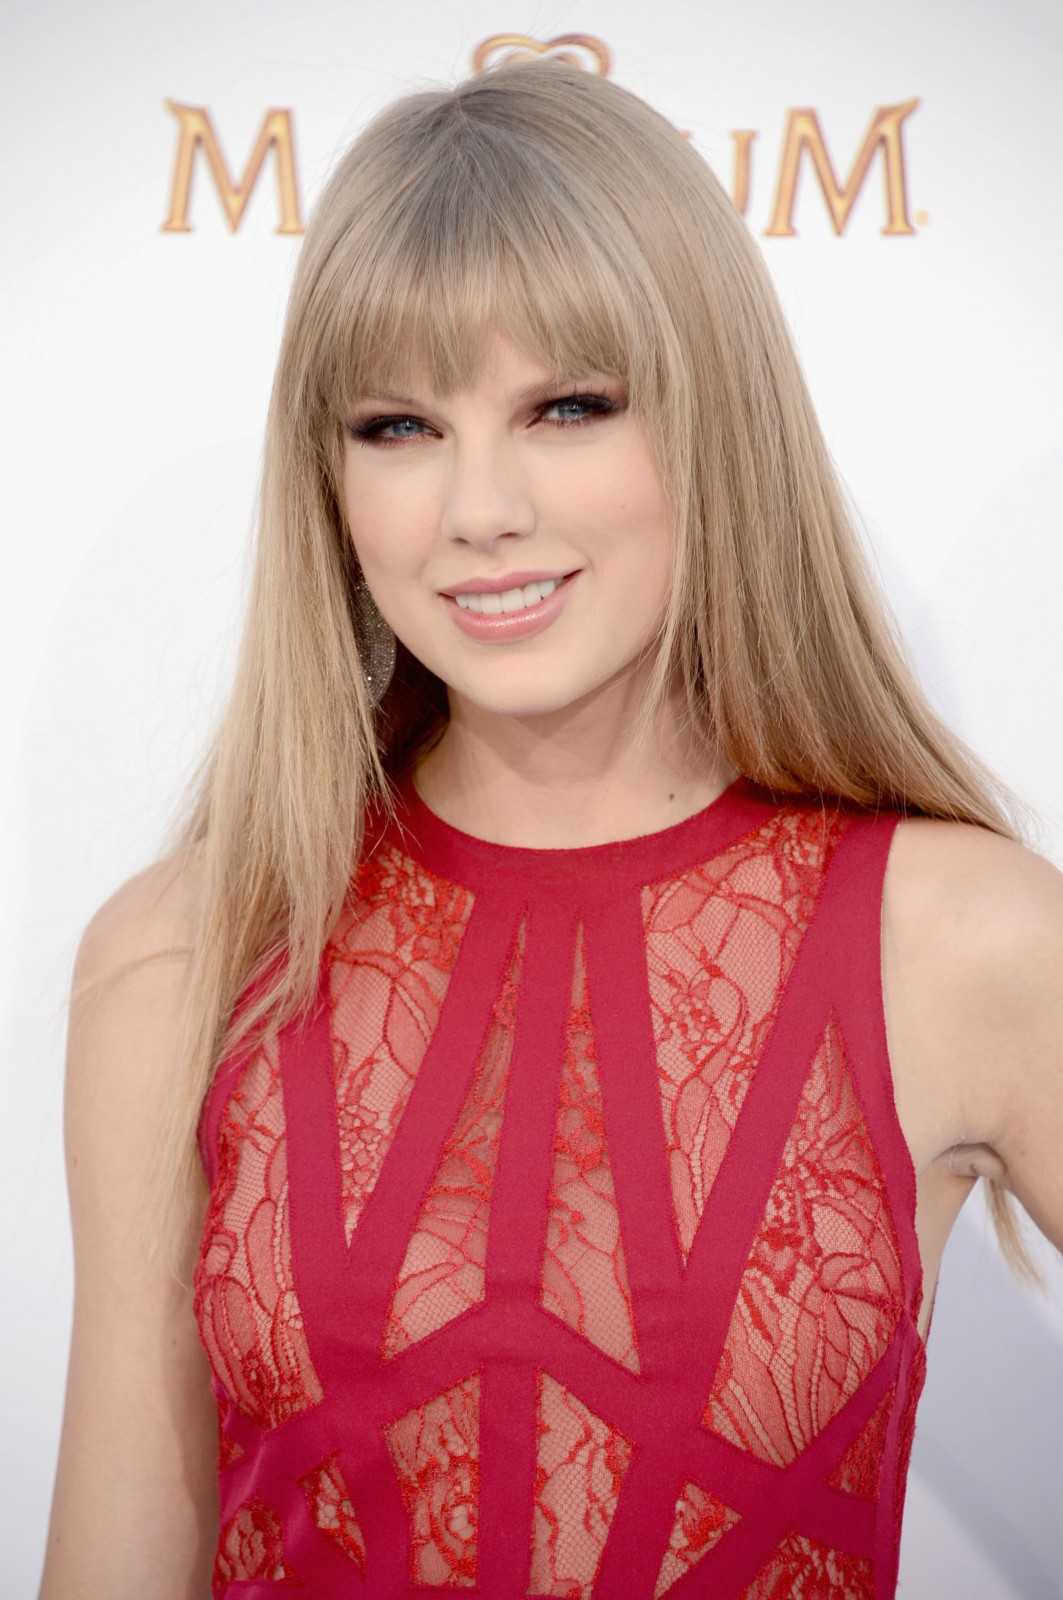 Taylor Swift And French Lace 22 Photos  French Lace -2890